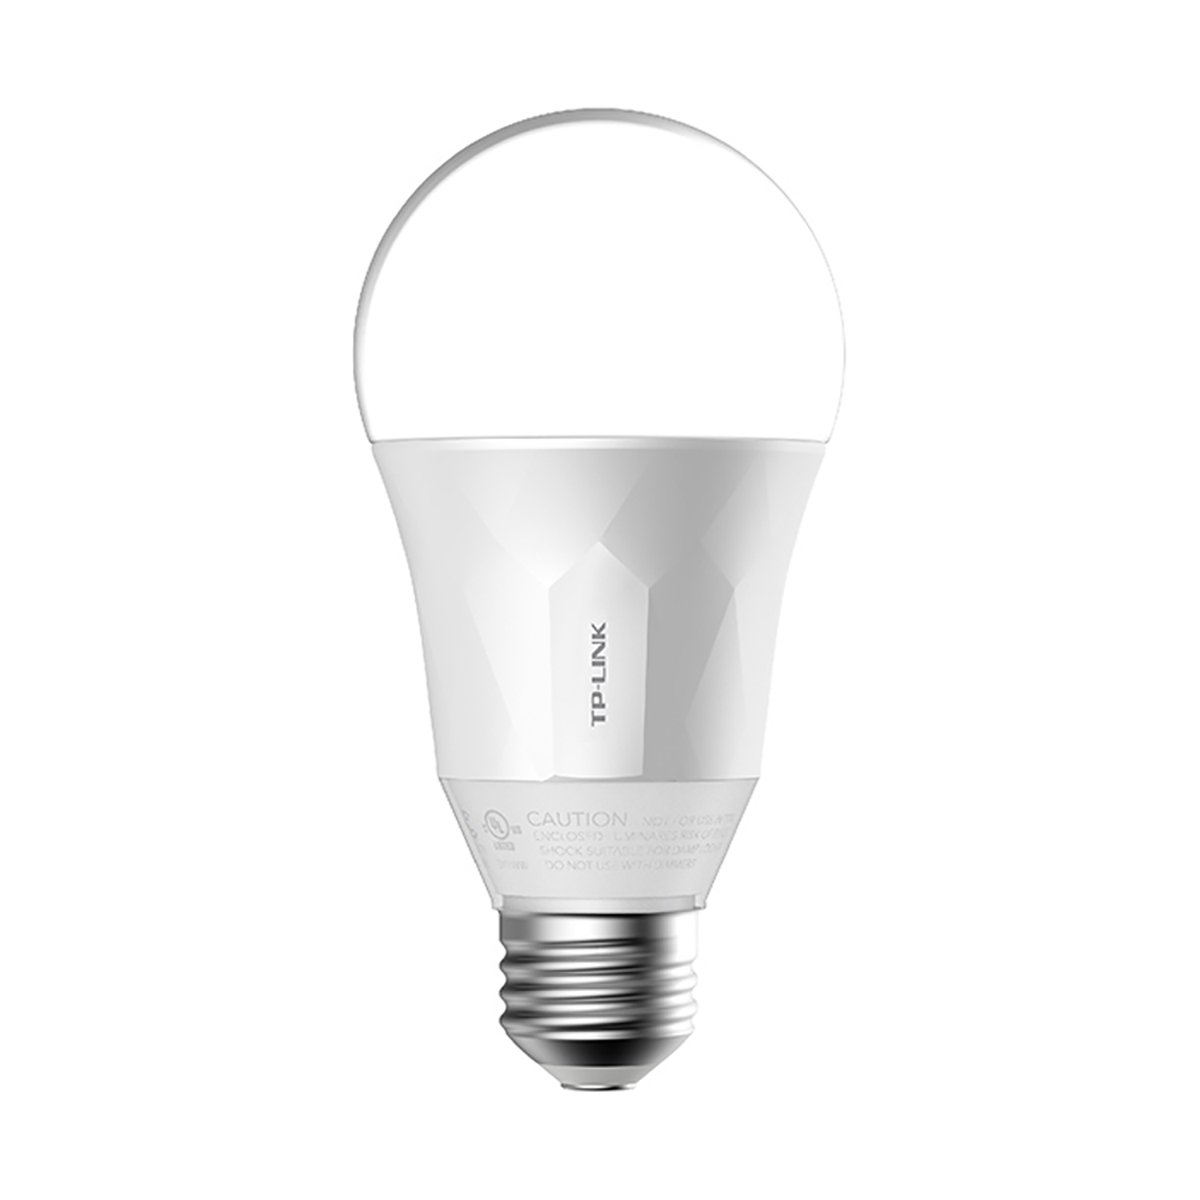 TP-Link LB100 Wi-Fi SmartLight 7W E27 to B22 Base LED Bulb (Off-White) Compatible with Android, iOS, Amazon Alexa and Google Assistant